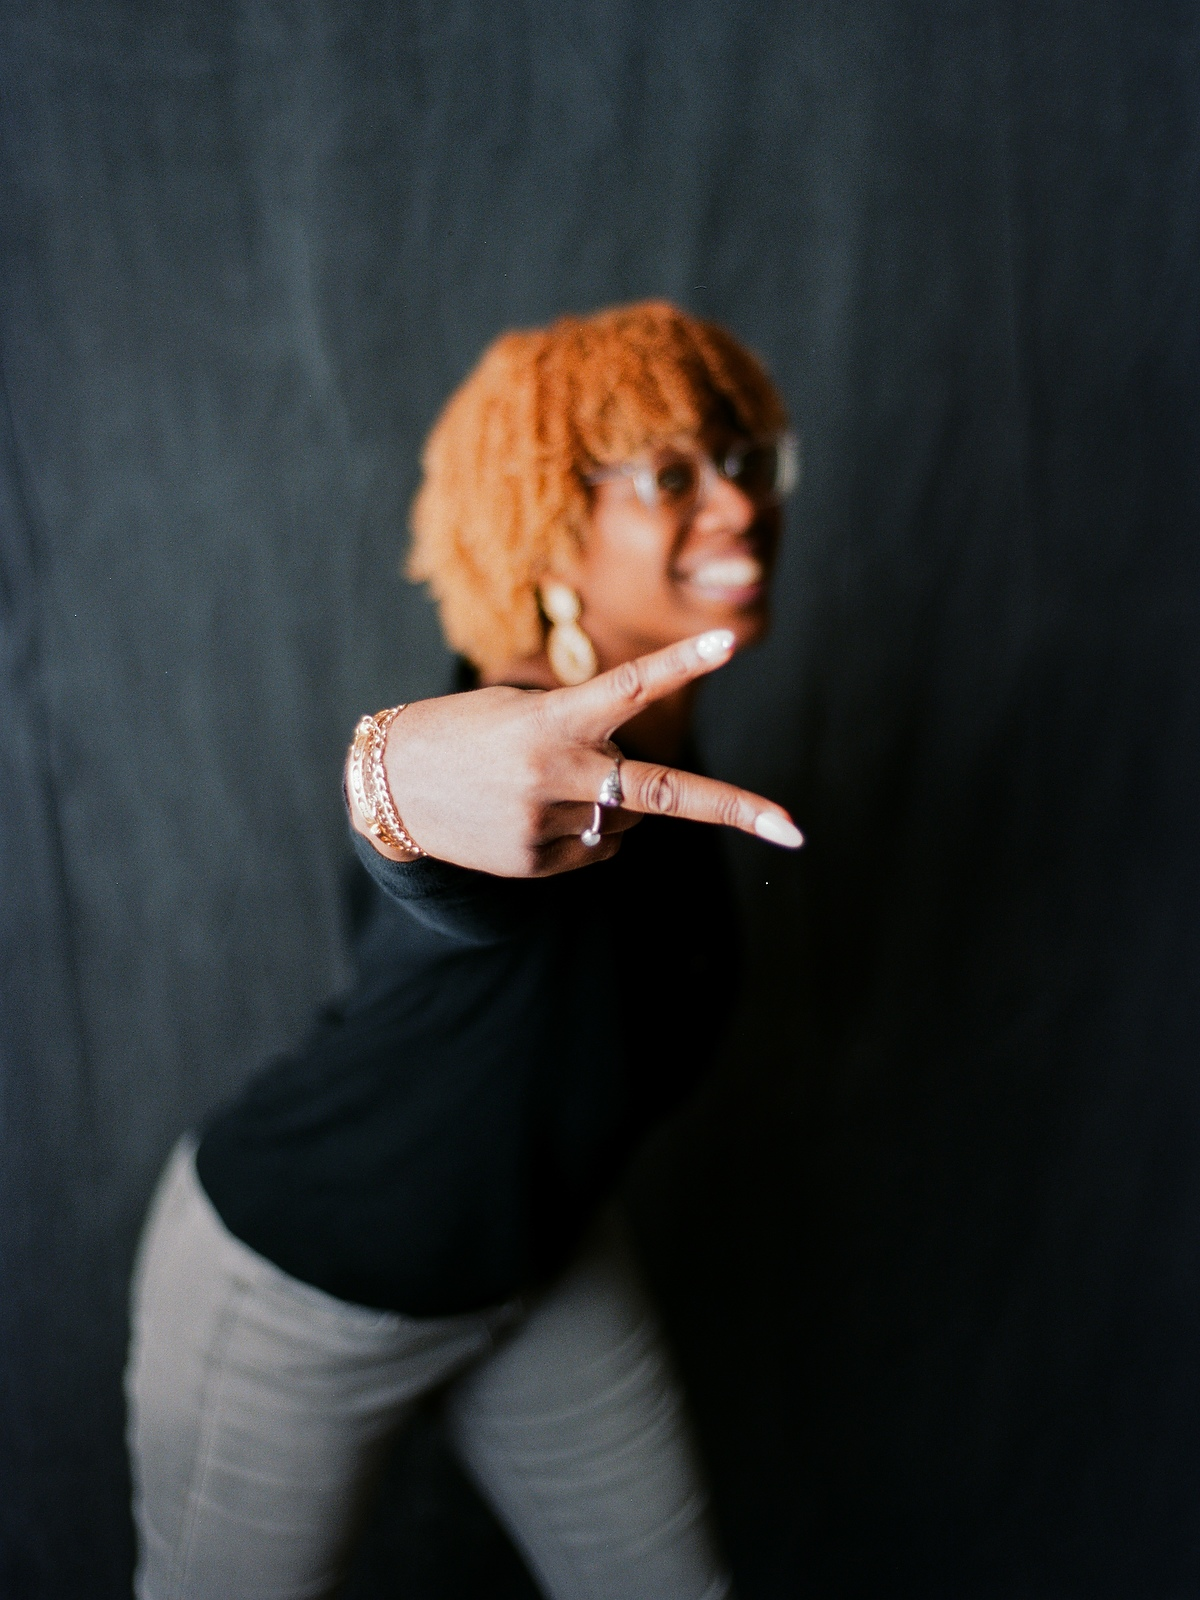 portrait with woman holding up peace sign